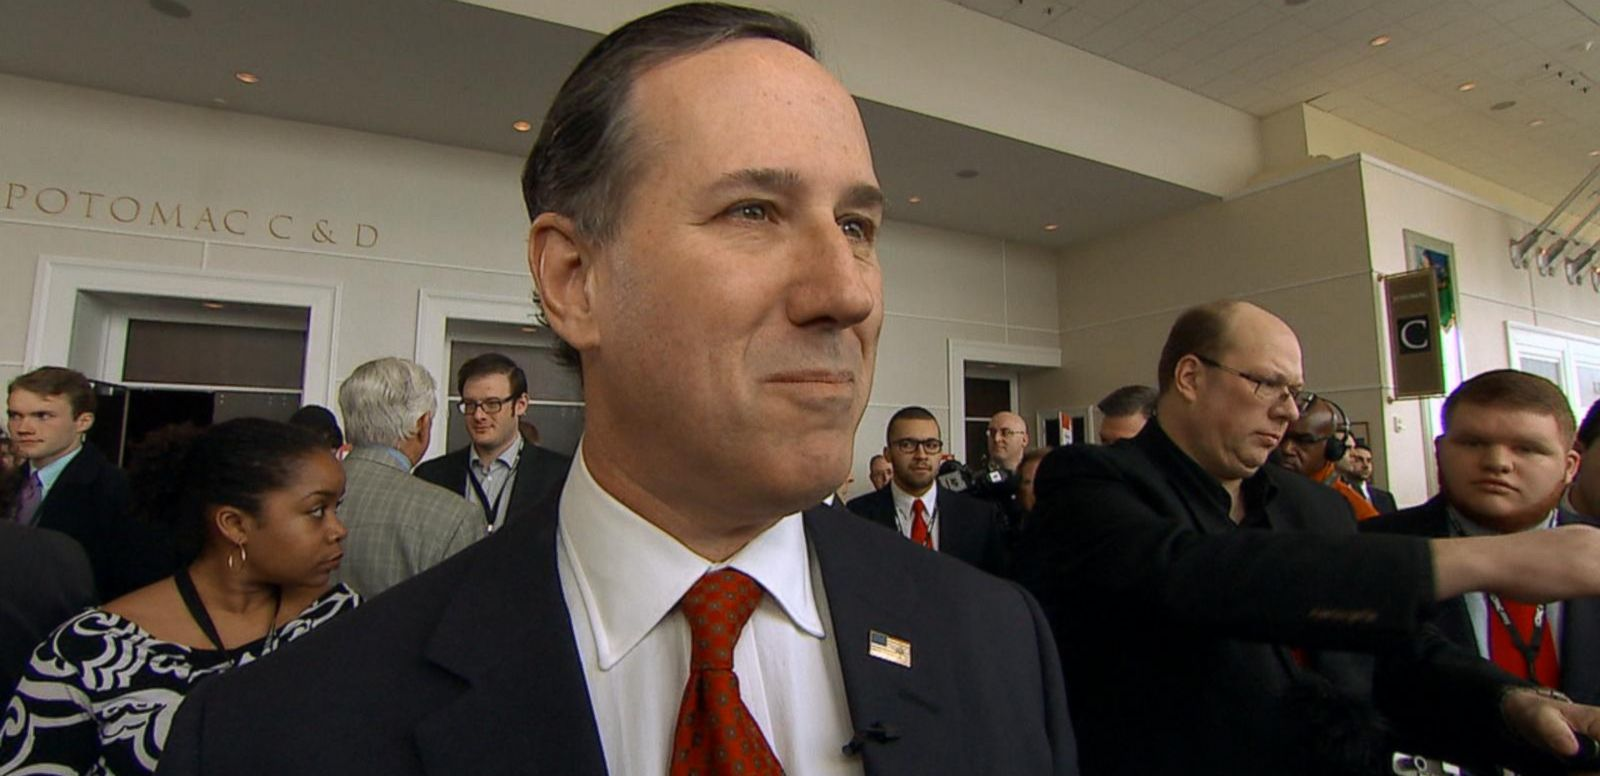 VIDEO: Rick Santorum Says Winning a Straw Poll OnIy Requires Spending a 'Lot of Money'